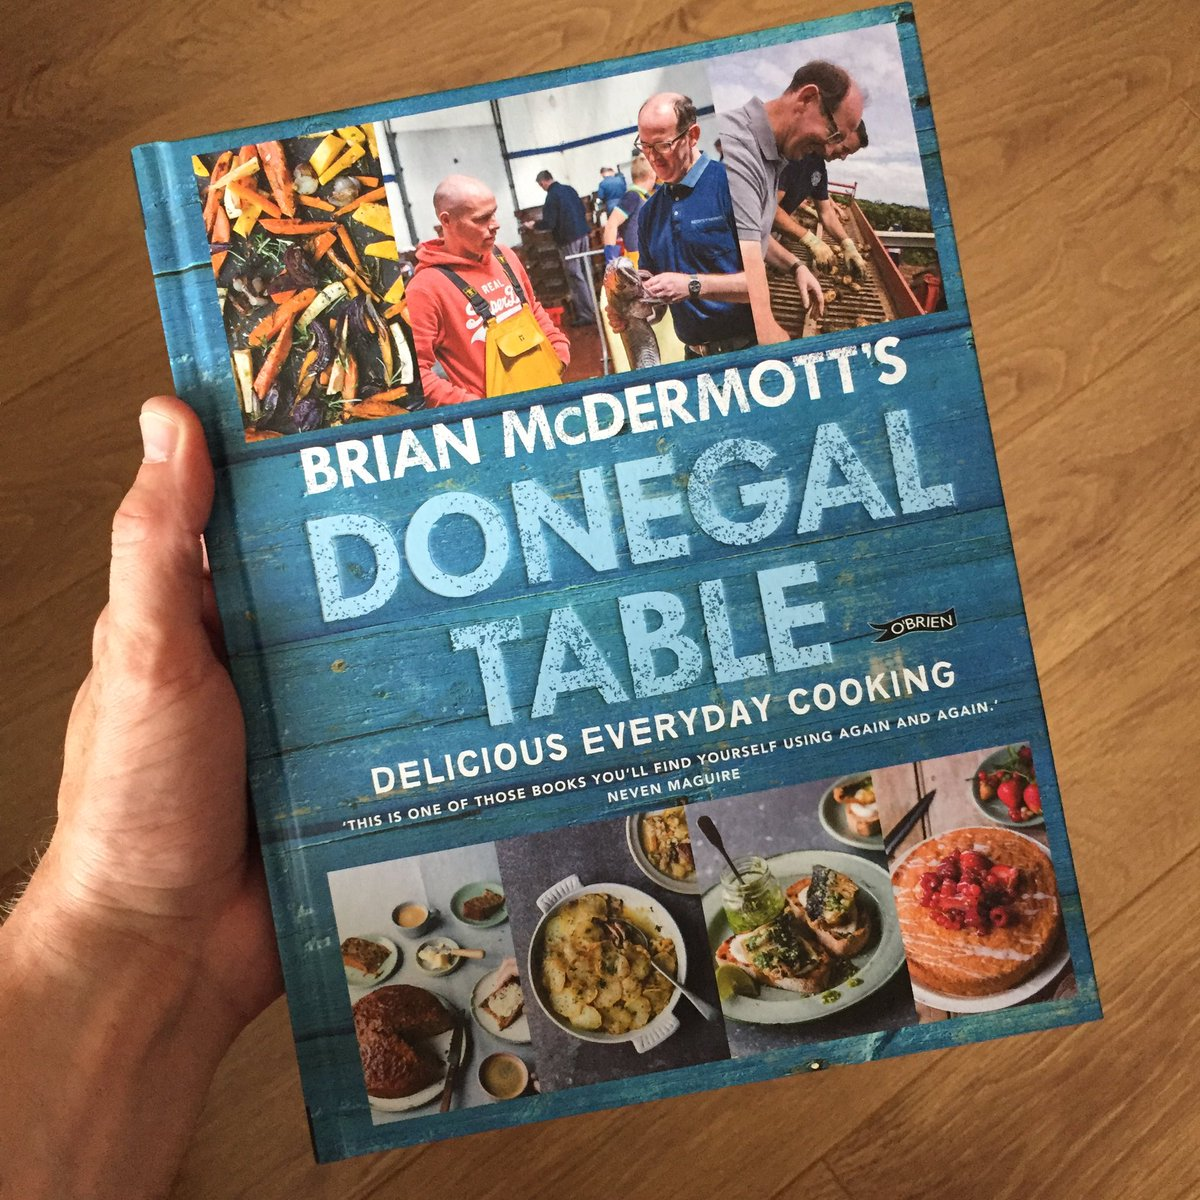 Fabulous birthday present from my folks but does this mean I have to stay at home and cook instead of visiting @FoyleHotel...? #WorldsBestCookeryBook #CheersBrian #DonegalTable<br>http://pic.twitter.com/Lo9mHVlNNR